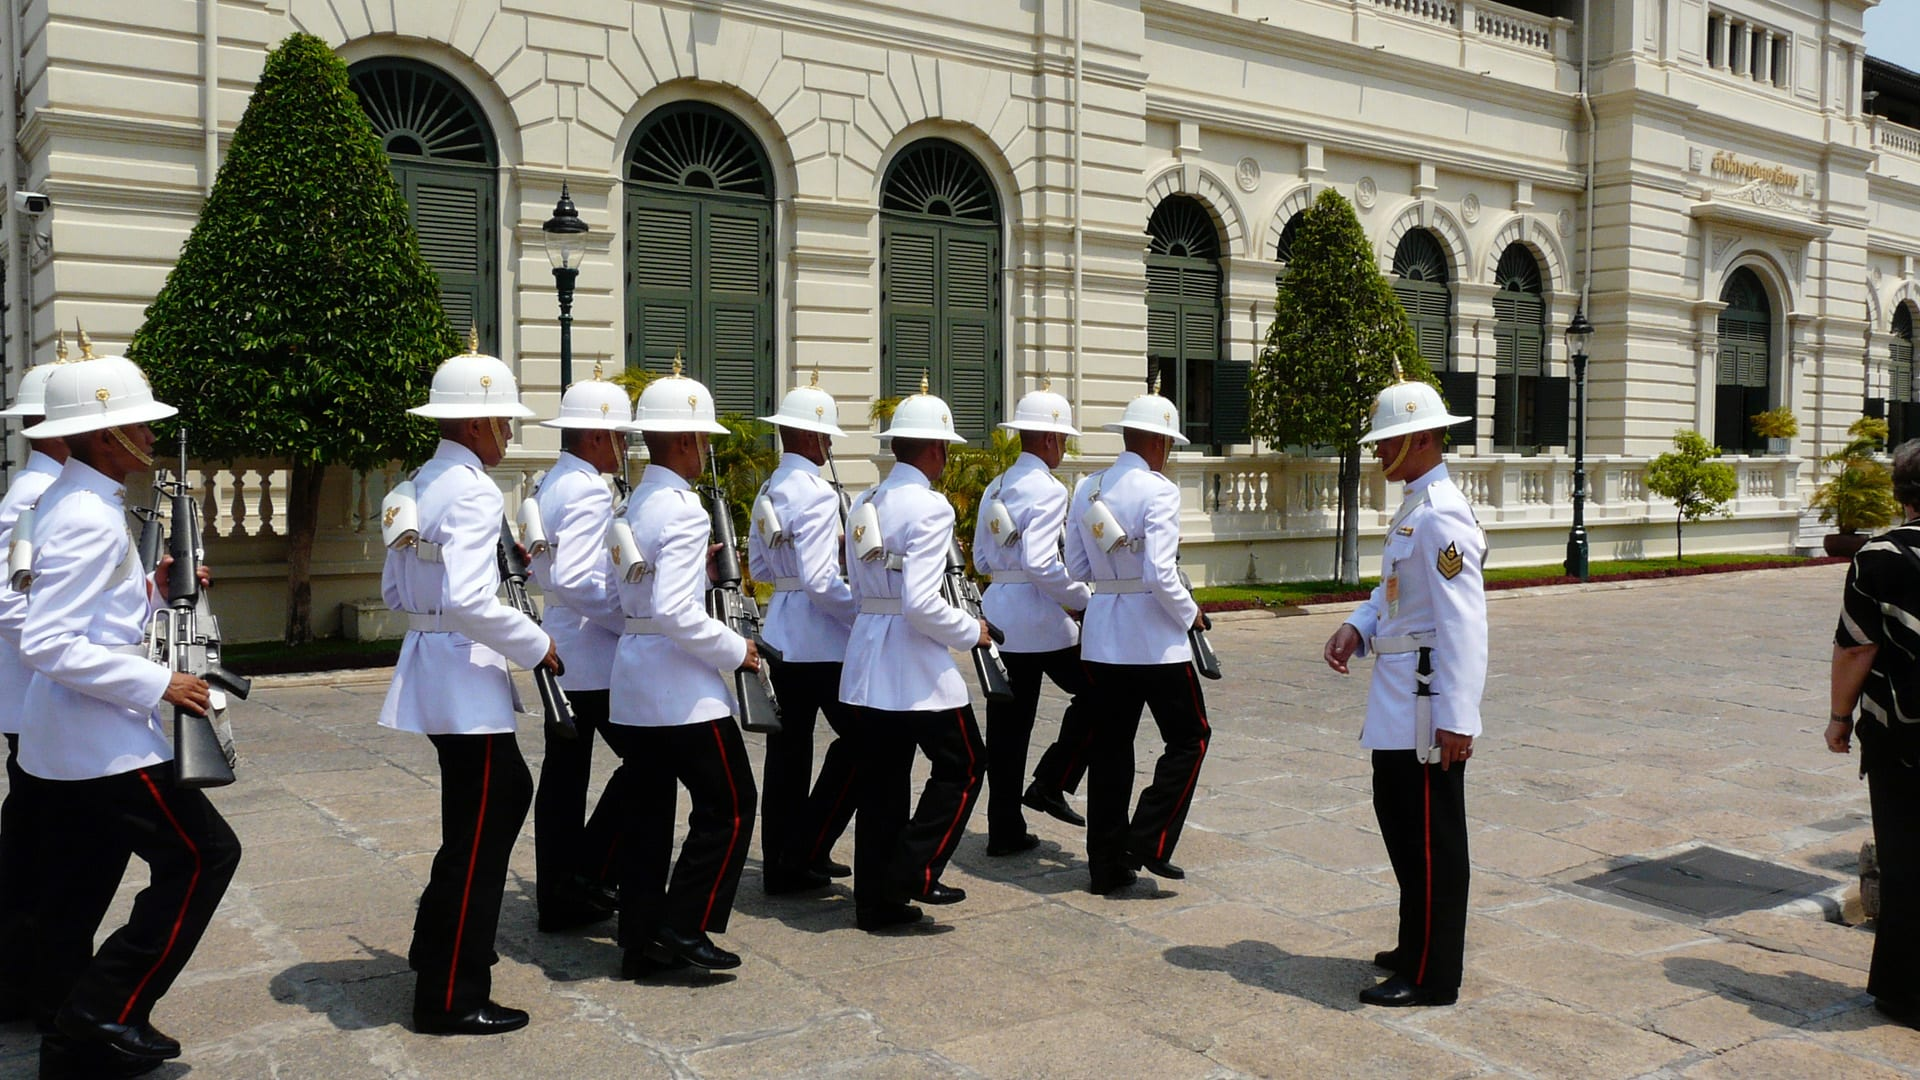 Guards in The Grand Palace